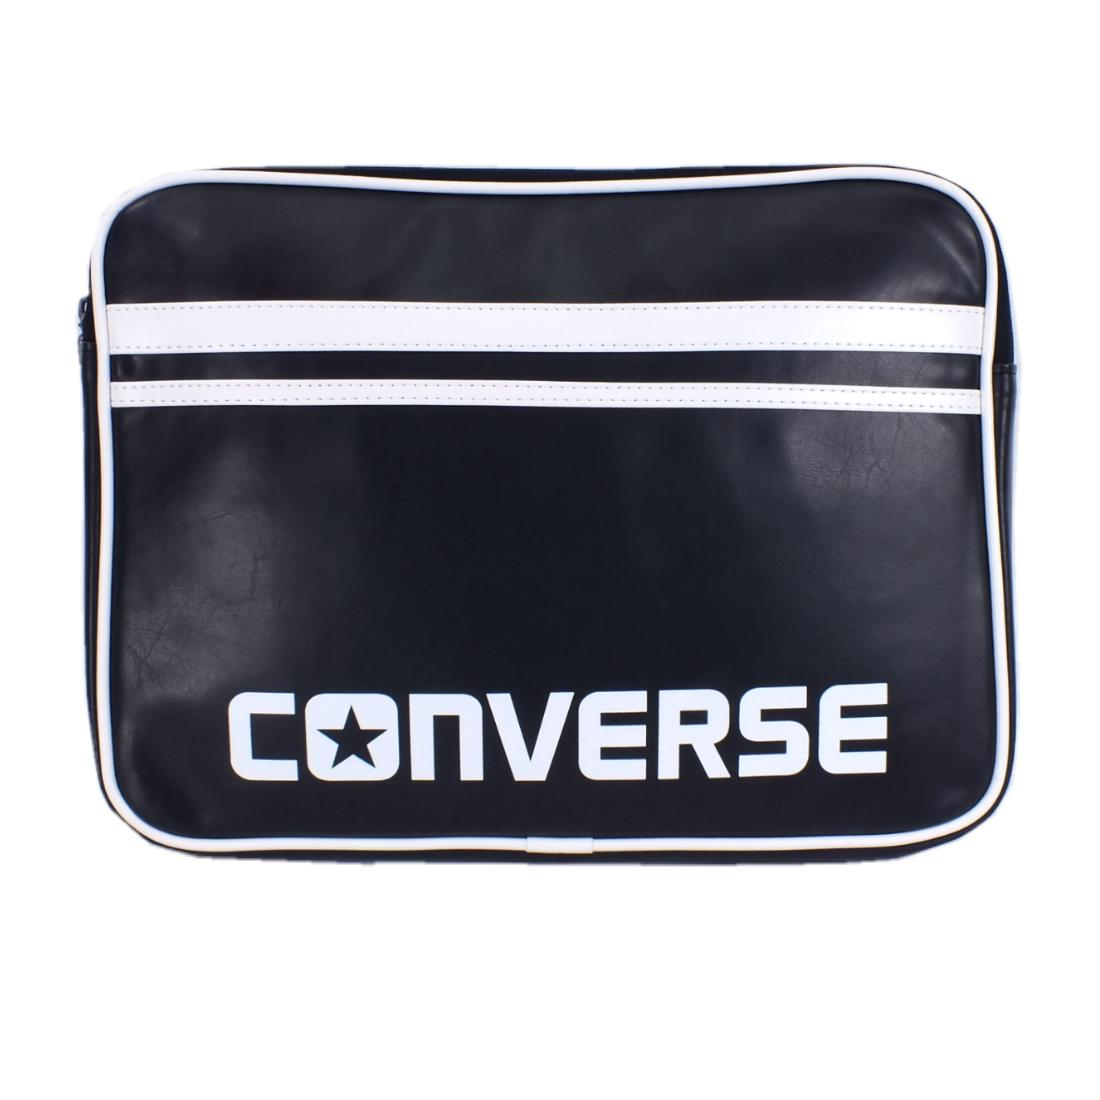 converse 13 39 39 laptop sleeve tasche laptoptasche schwarz 13. Black Bedroom Furniture Sets. Home Design Ideas